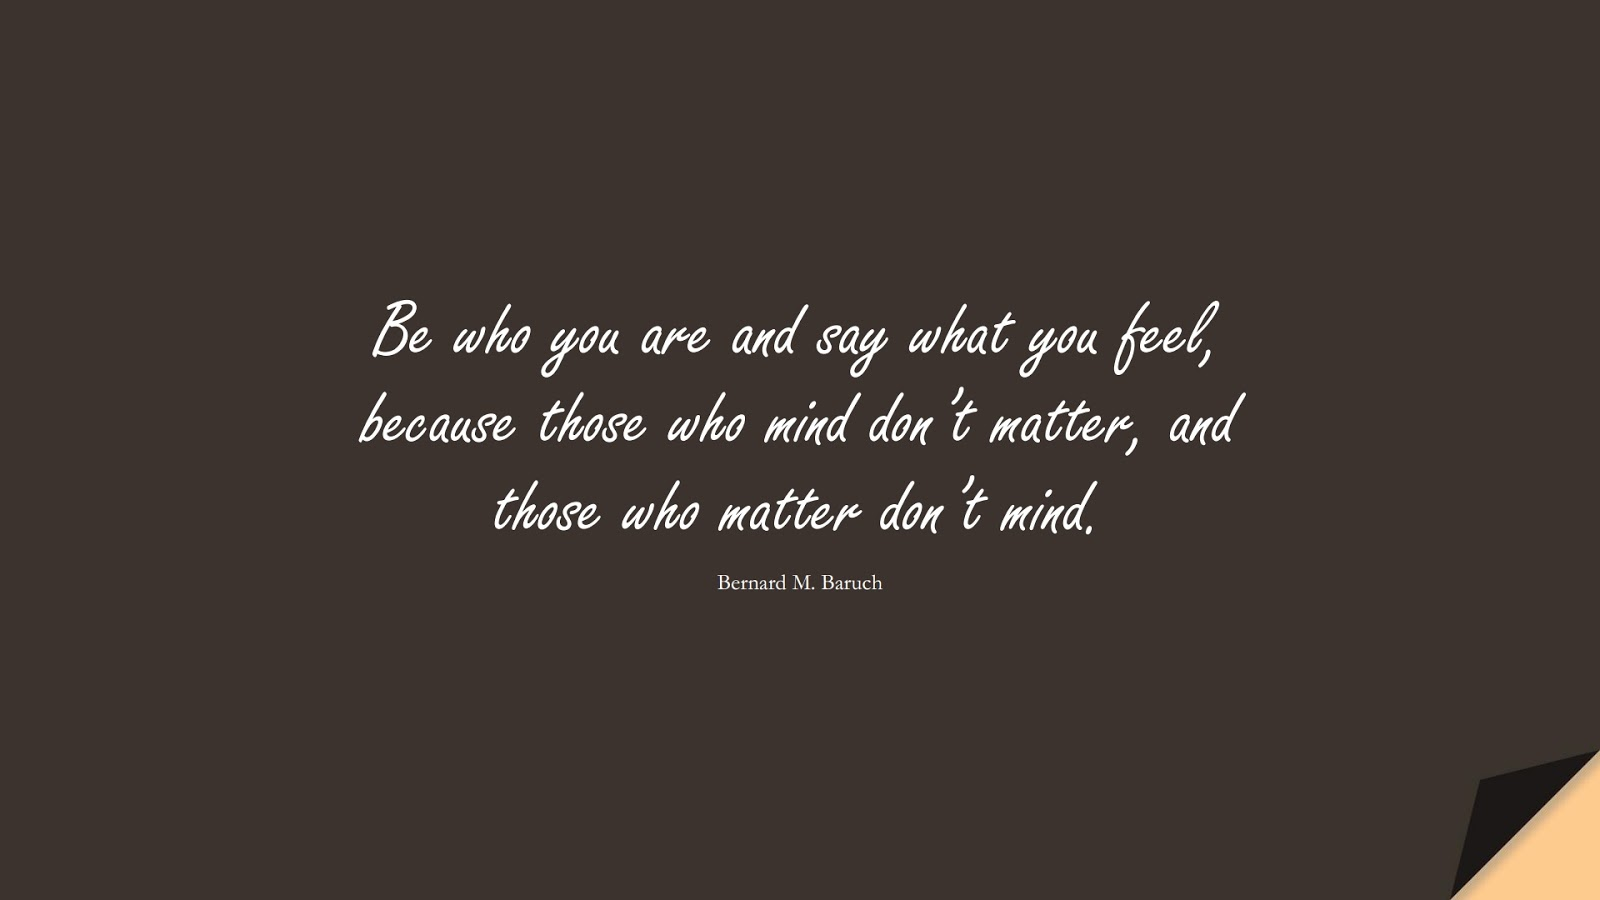 Be who you are and say what you feel, because those who mind don't matter, and those who matter don't mind. (Bernard M. Baruch);  #ShortQuotes